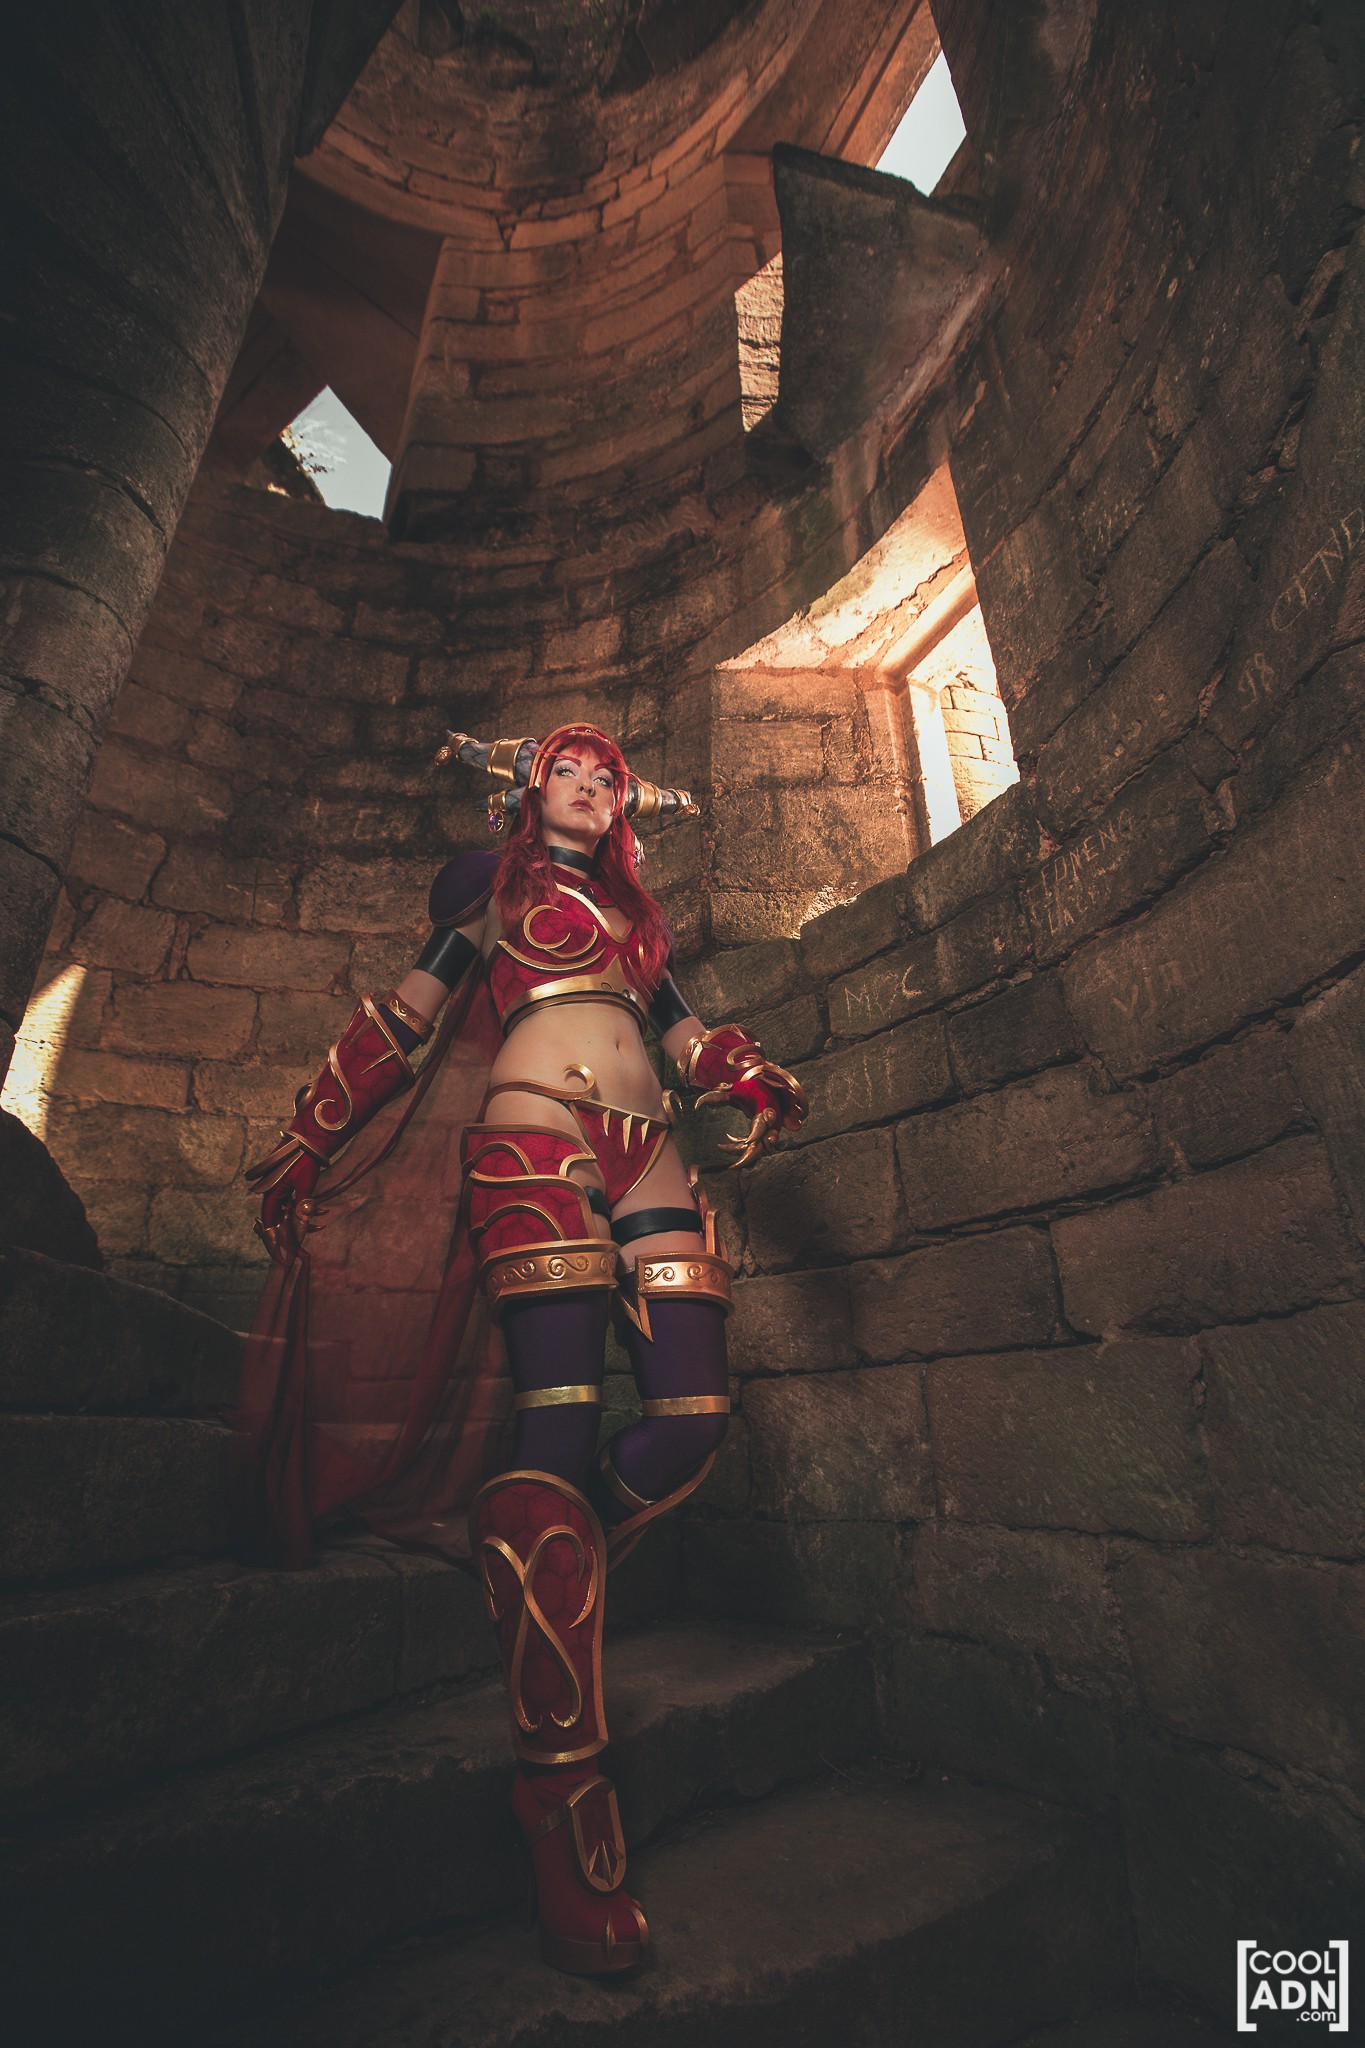 The chronicles of alexstrasza adult pic